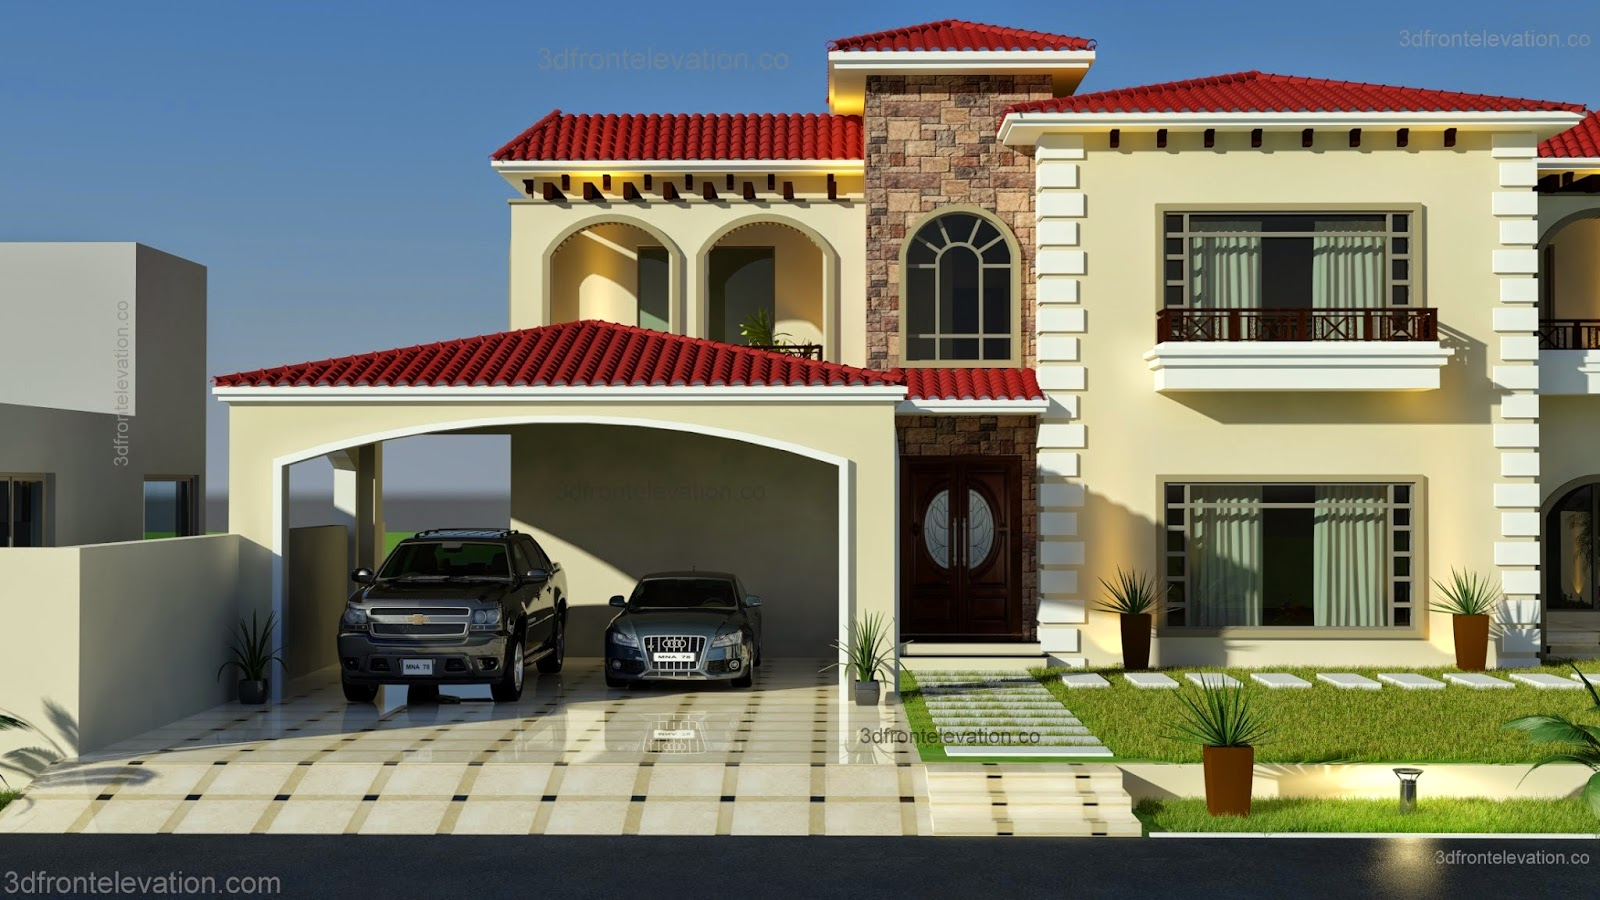 3D Front Elevation.com: Beautiful Mediterranean House Plans + Design ...